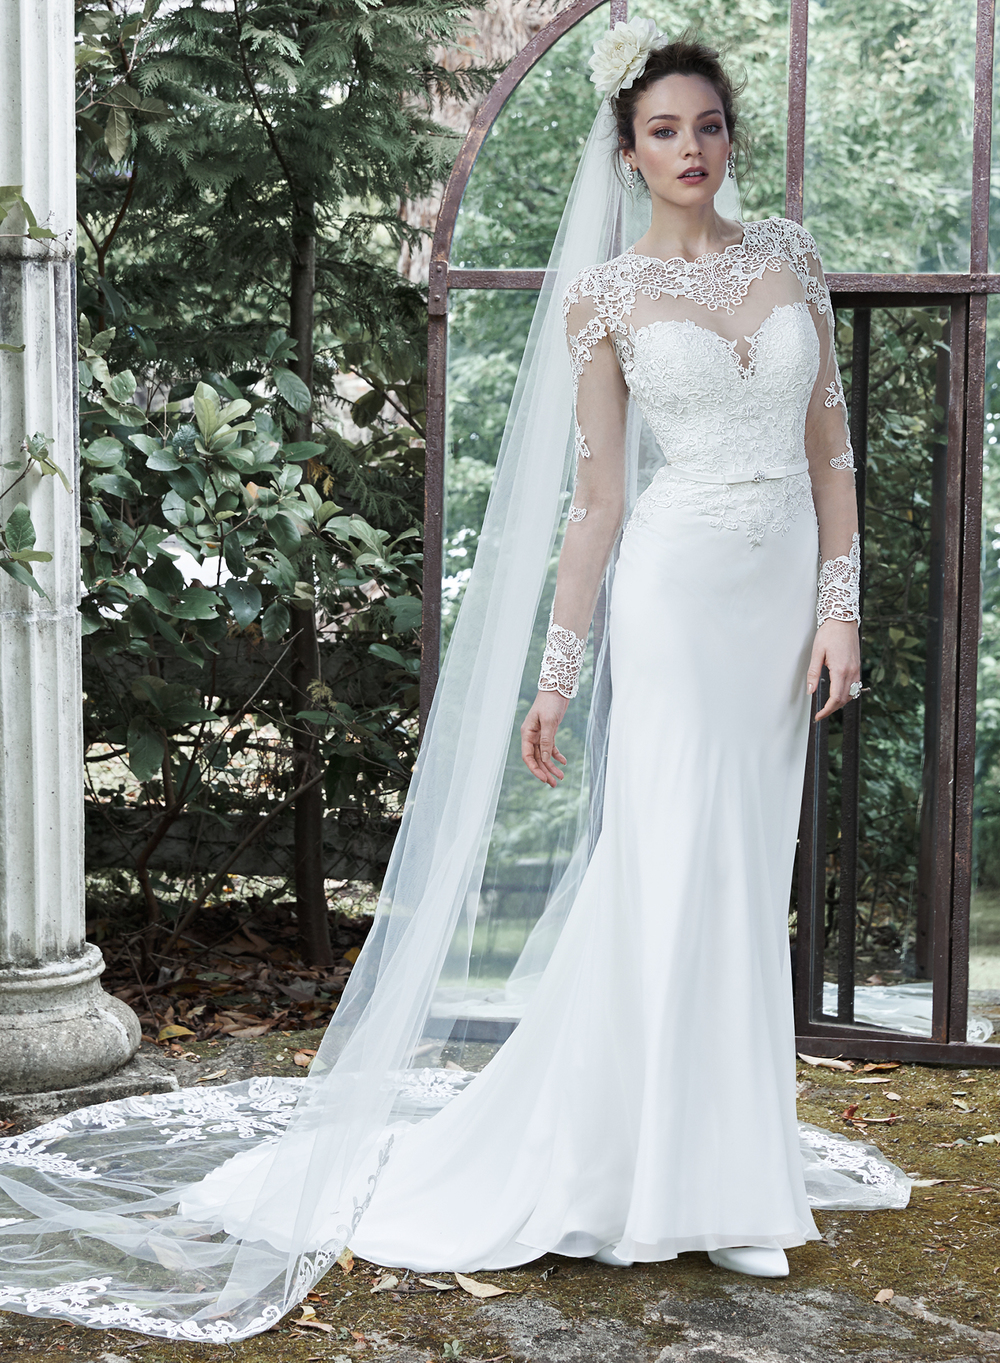 Vaughn -   This demure sheath dress gets an extra dose of drama with full-length illusion sleeves, neckline and illusion open back, edged with striking lace appliques. Romantic lace adorns the bodice before meeting a flowing Arlo chiffon skirt. Finished with delicate belt and covered buttons over zipper closure. Available with full-length tulle and lace veil. Detachable veil sold separately    Colors available - White, Ivory